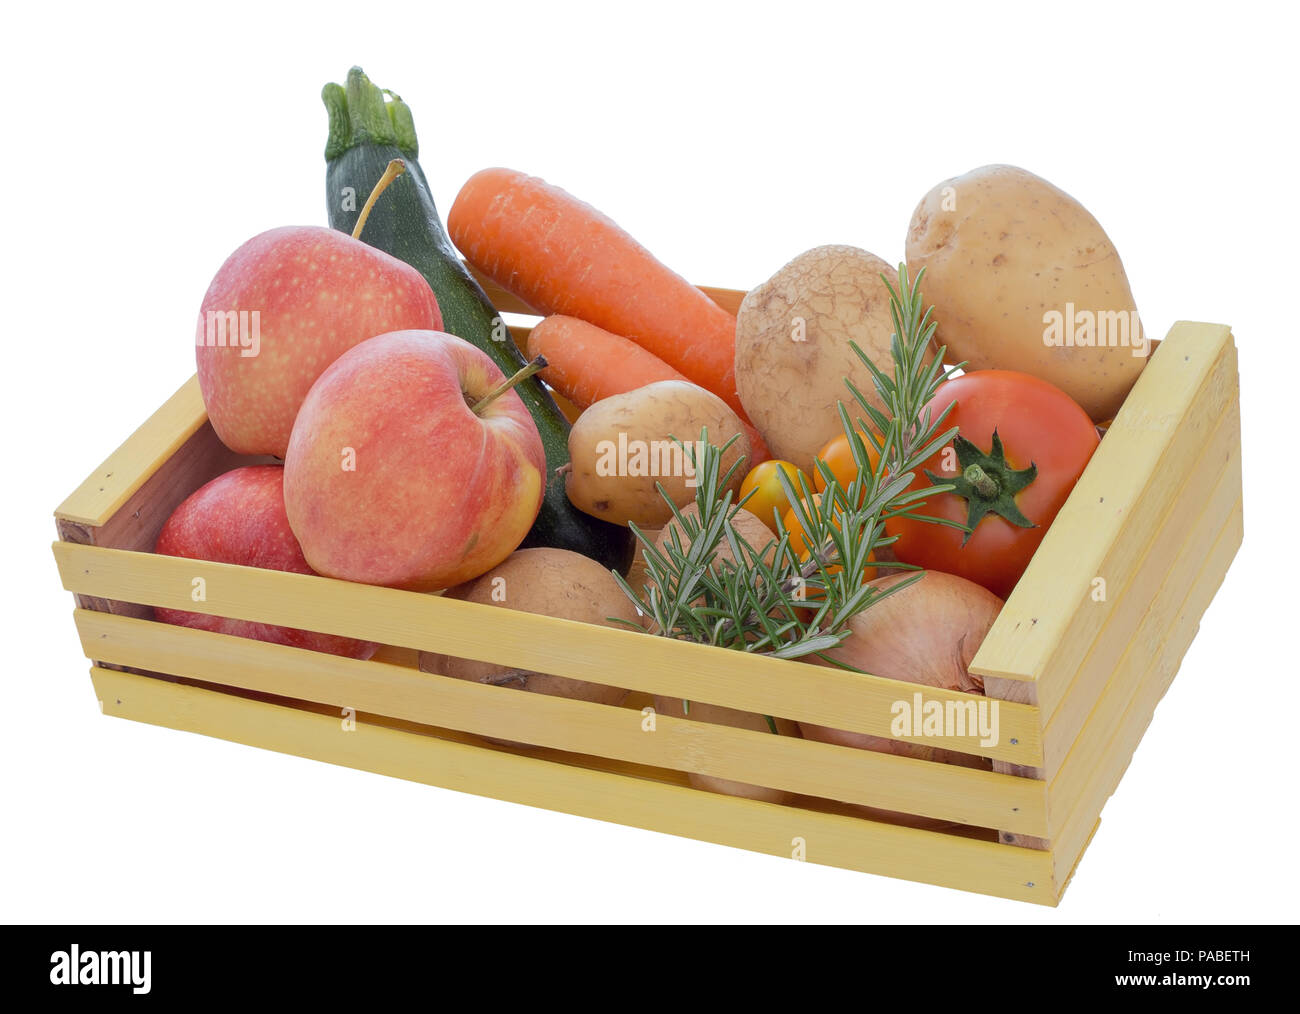 Assorted Ordinary Common Fruit And Vegetables In Wooden Box